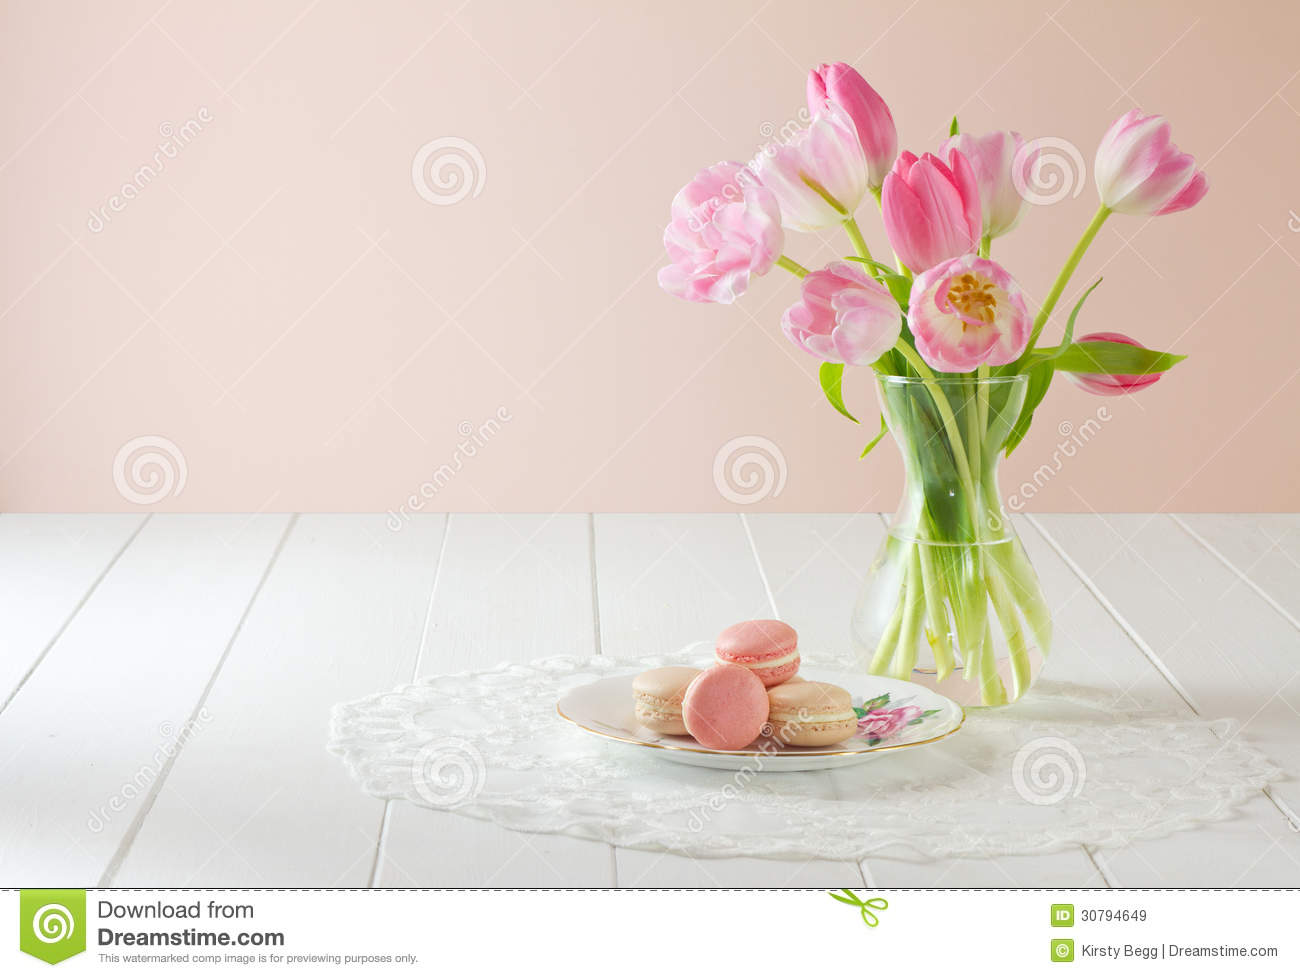 Macarons On Plate With Tulips Royalty Free Stock Images - Image ...